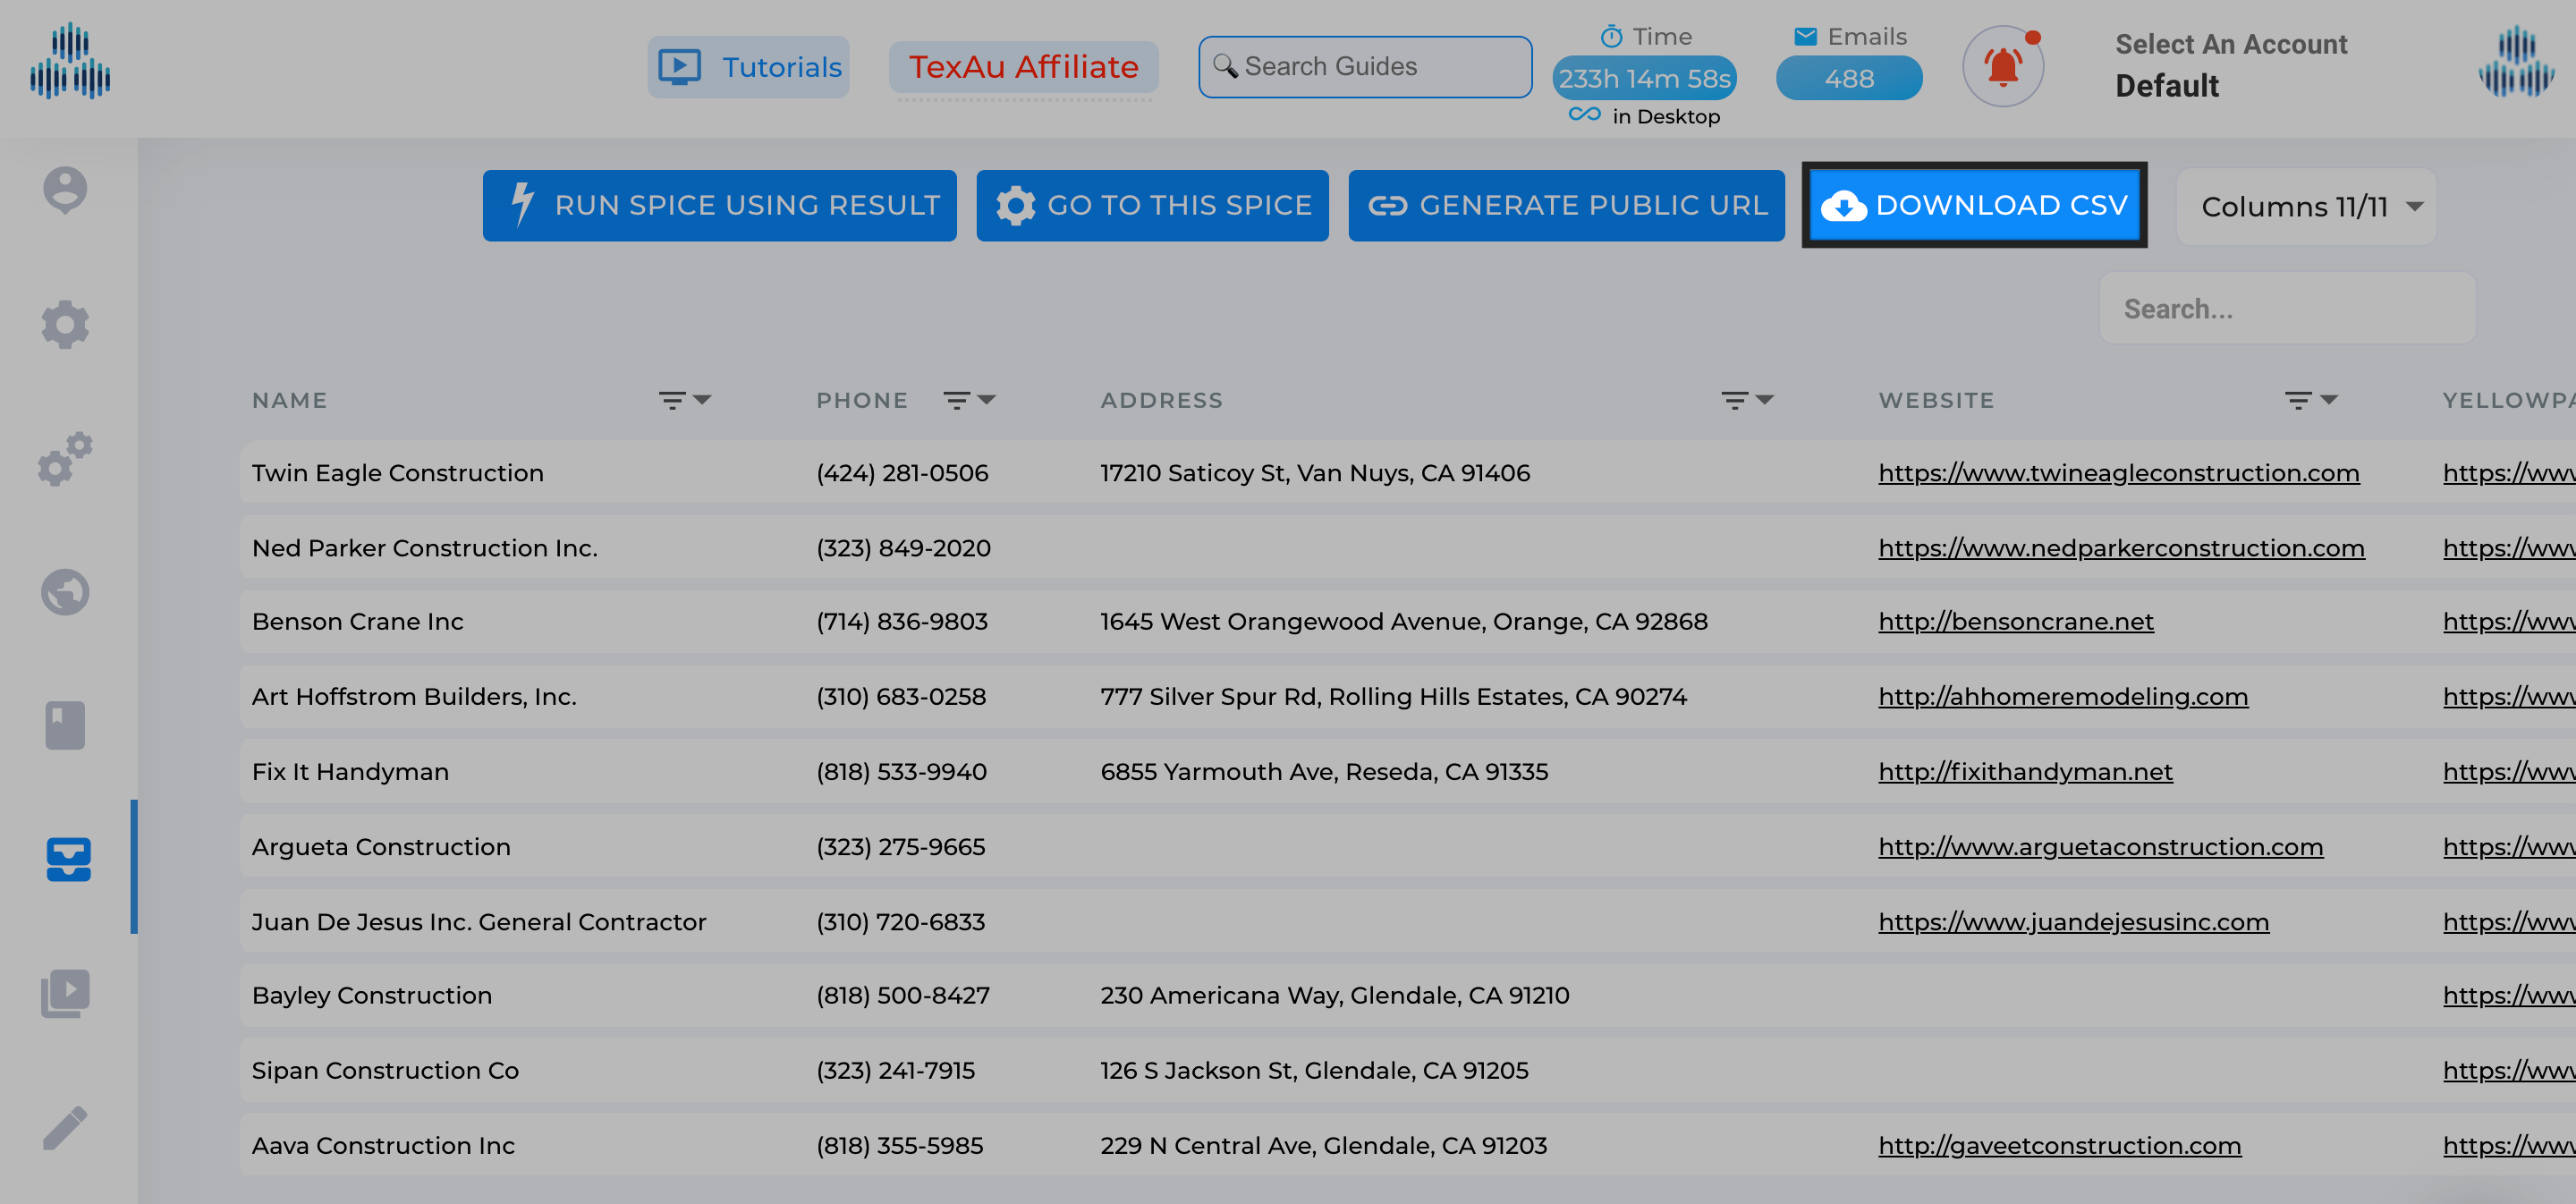 Extract search results from Yellow Pages